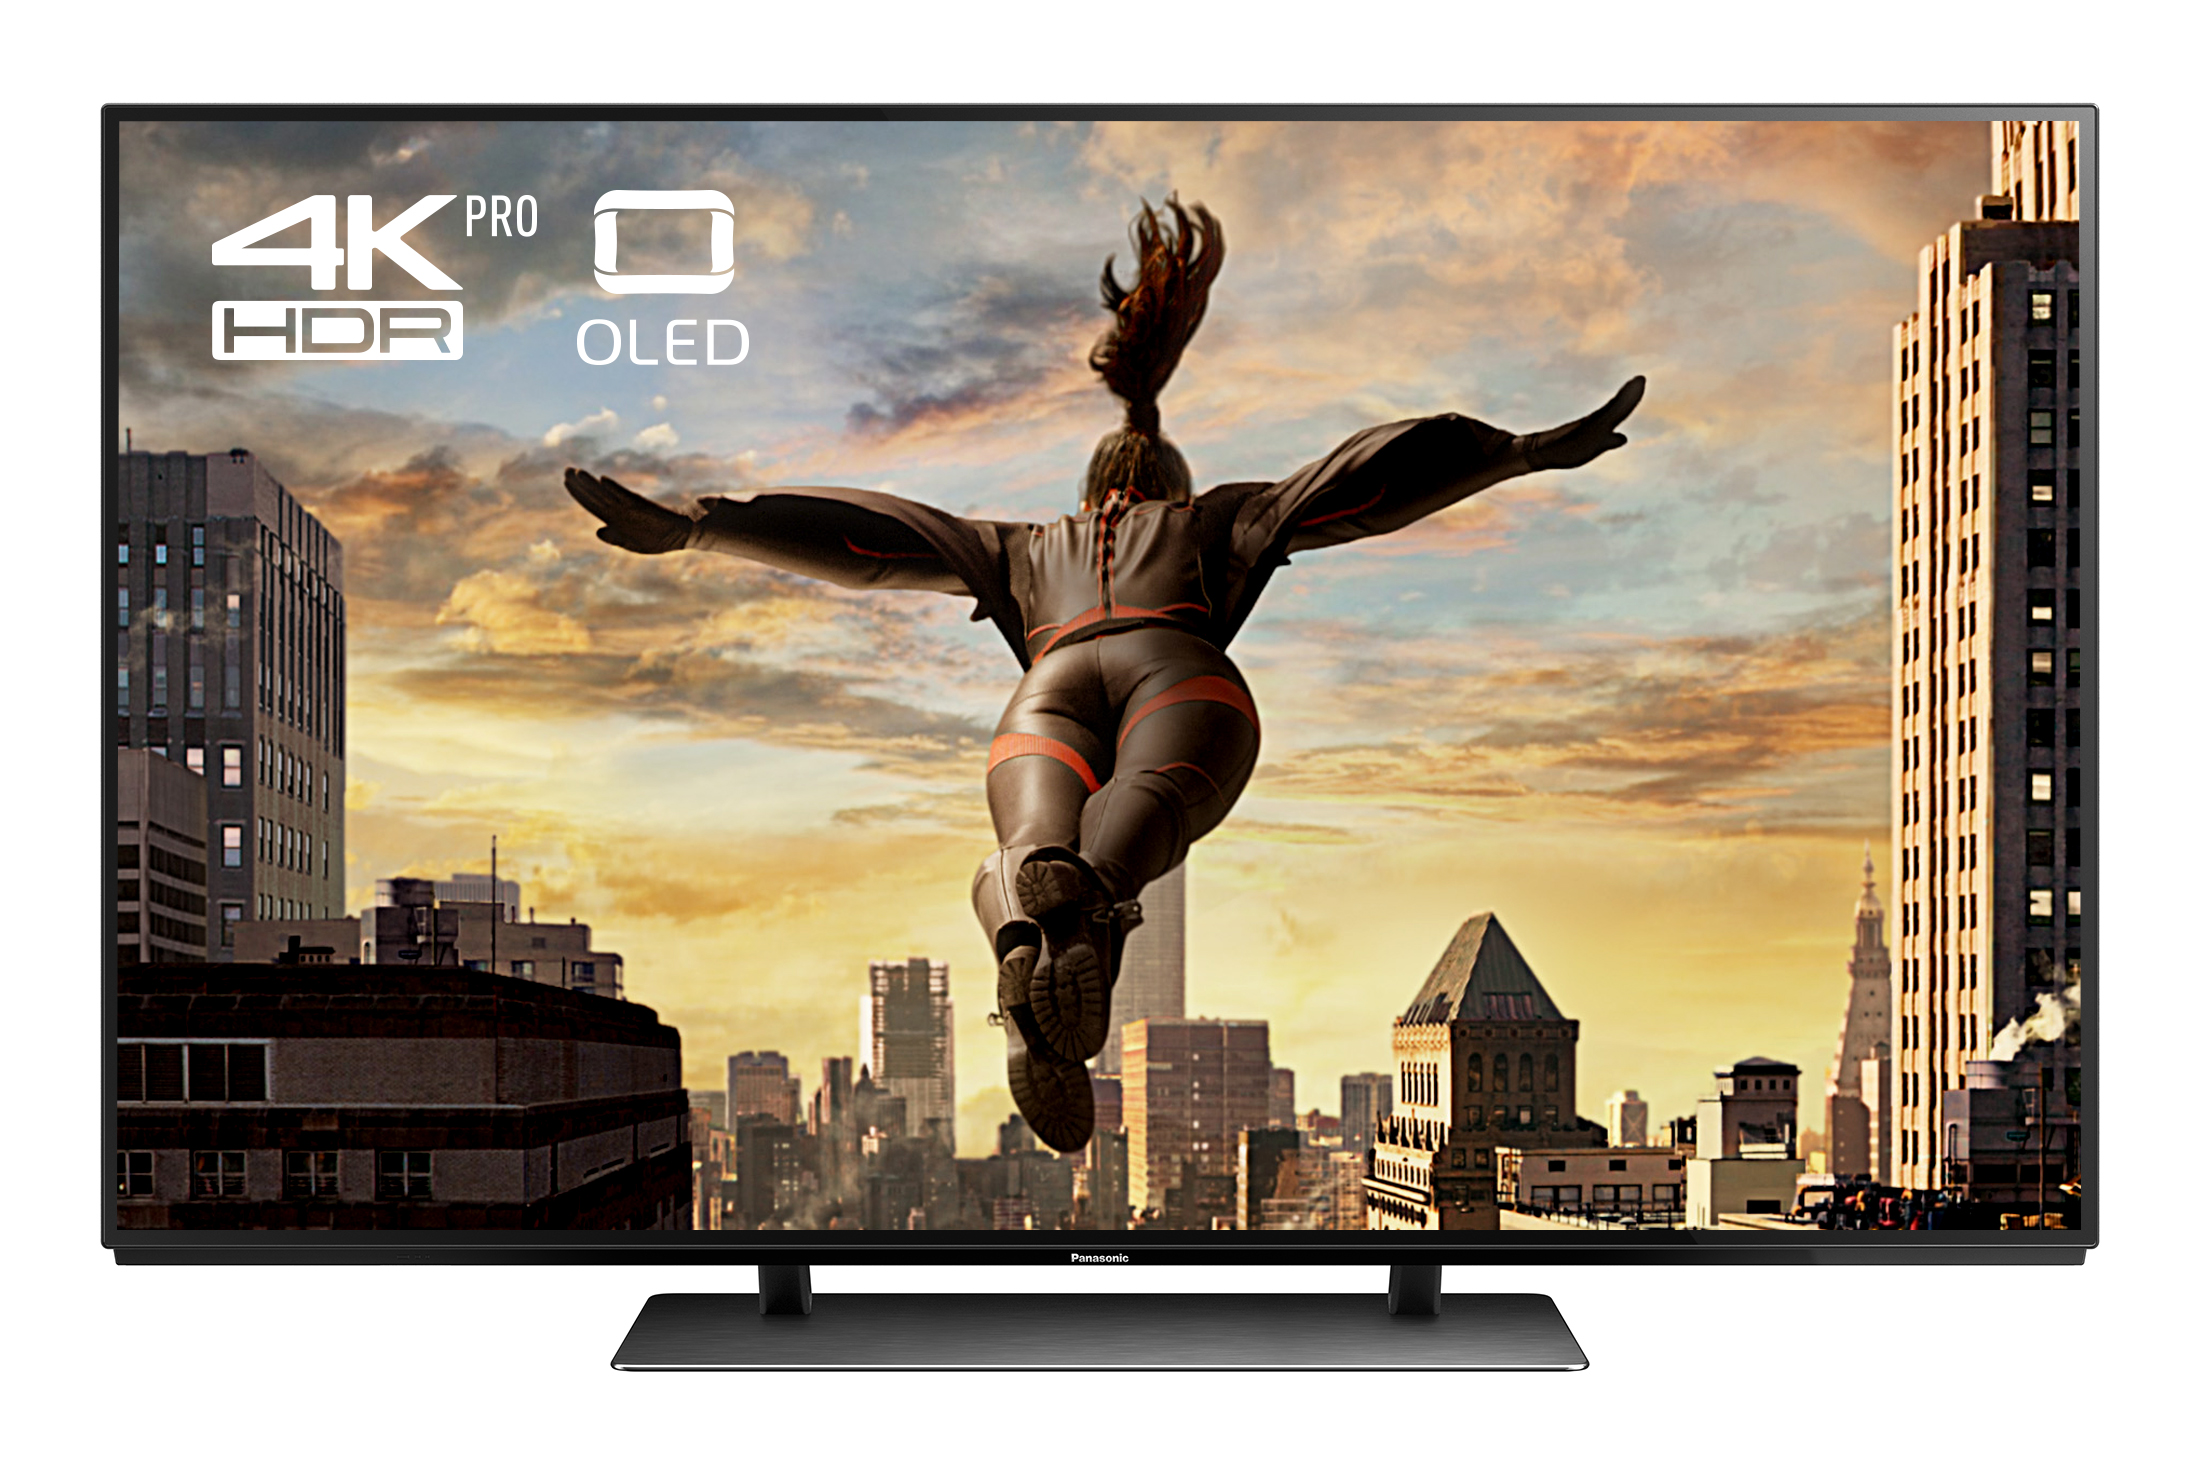 b1652934c Aký 4K TV si vybrať k Xbox One X alebo PS4 Pro? | Sector